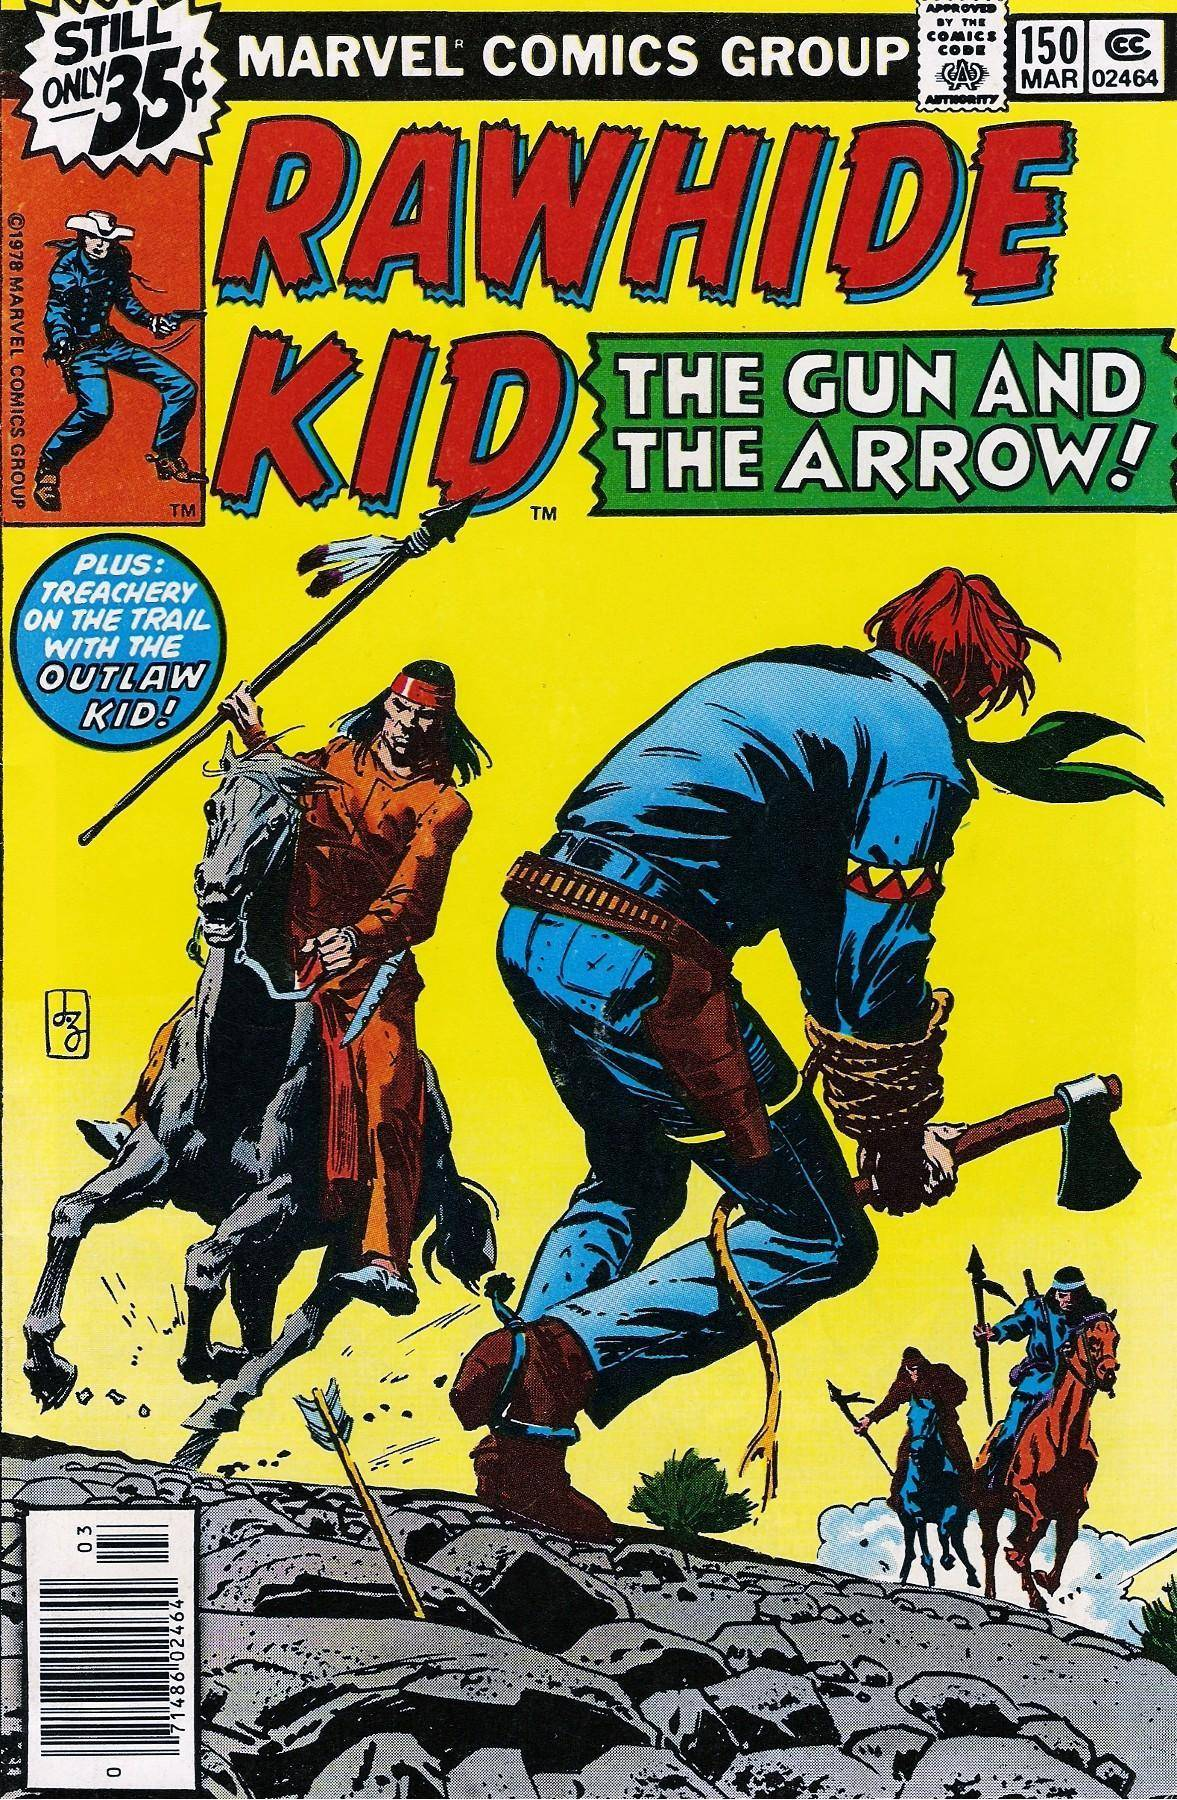 Rawhide Kid v1 150 1979 bluejeff1954